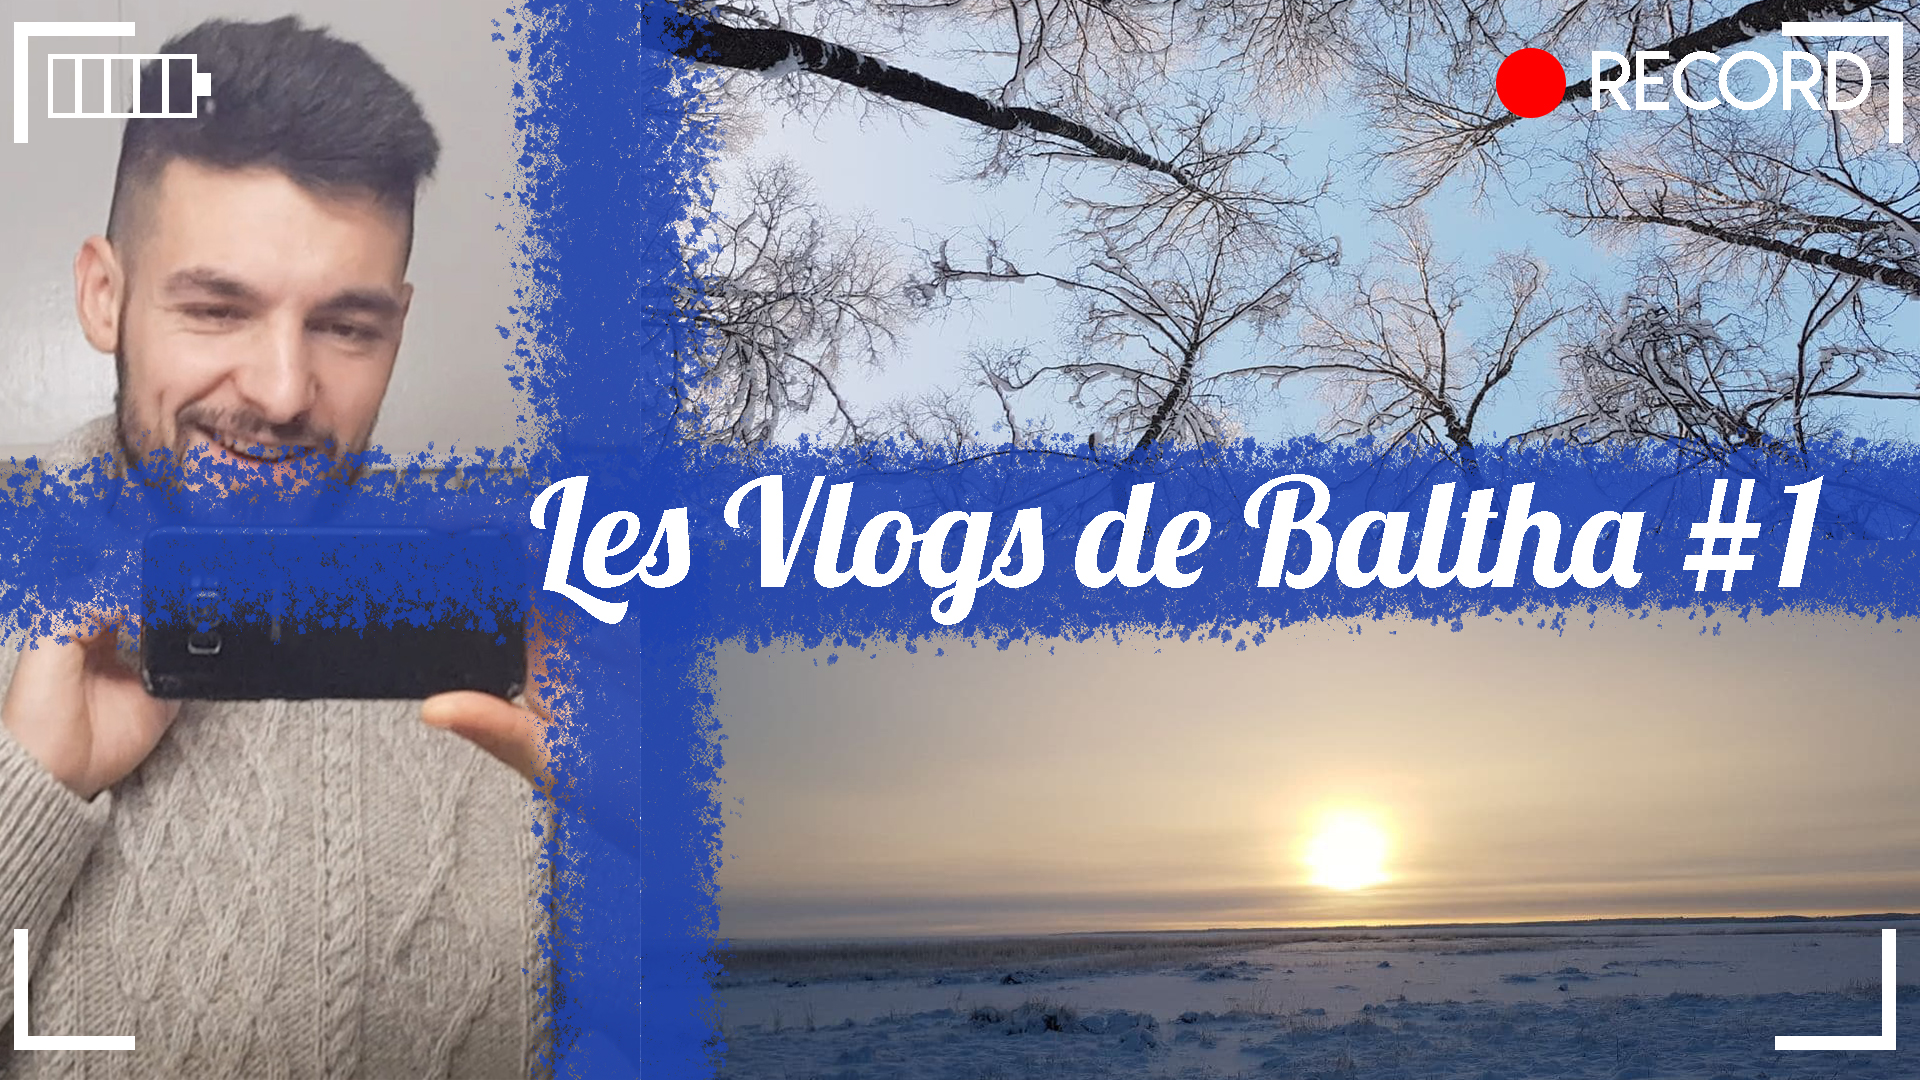 Les vlogs de Baltha #1